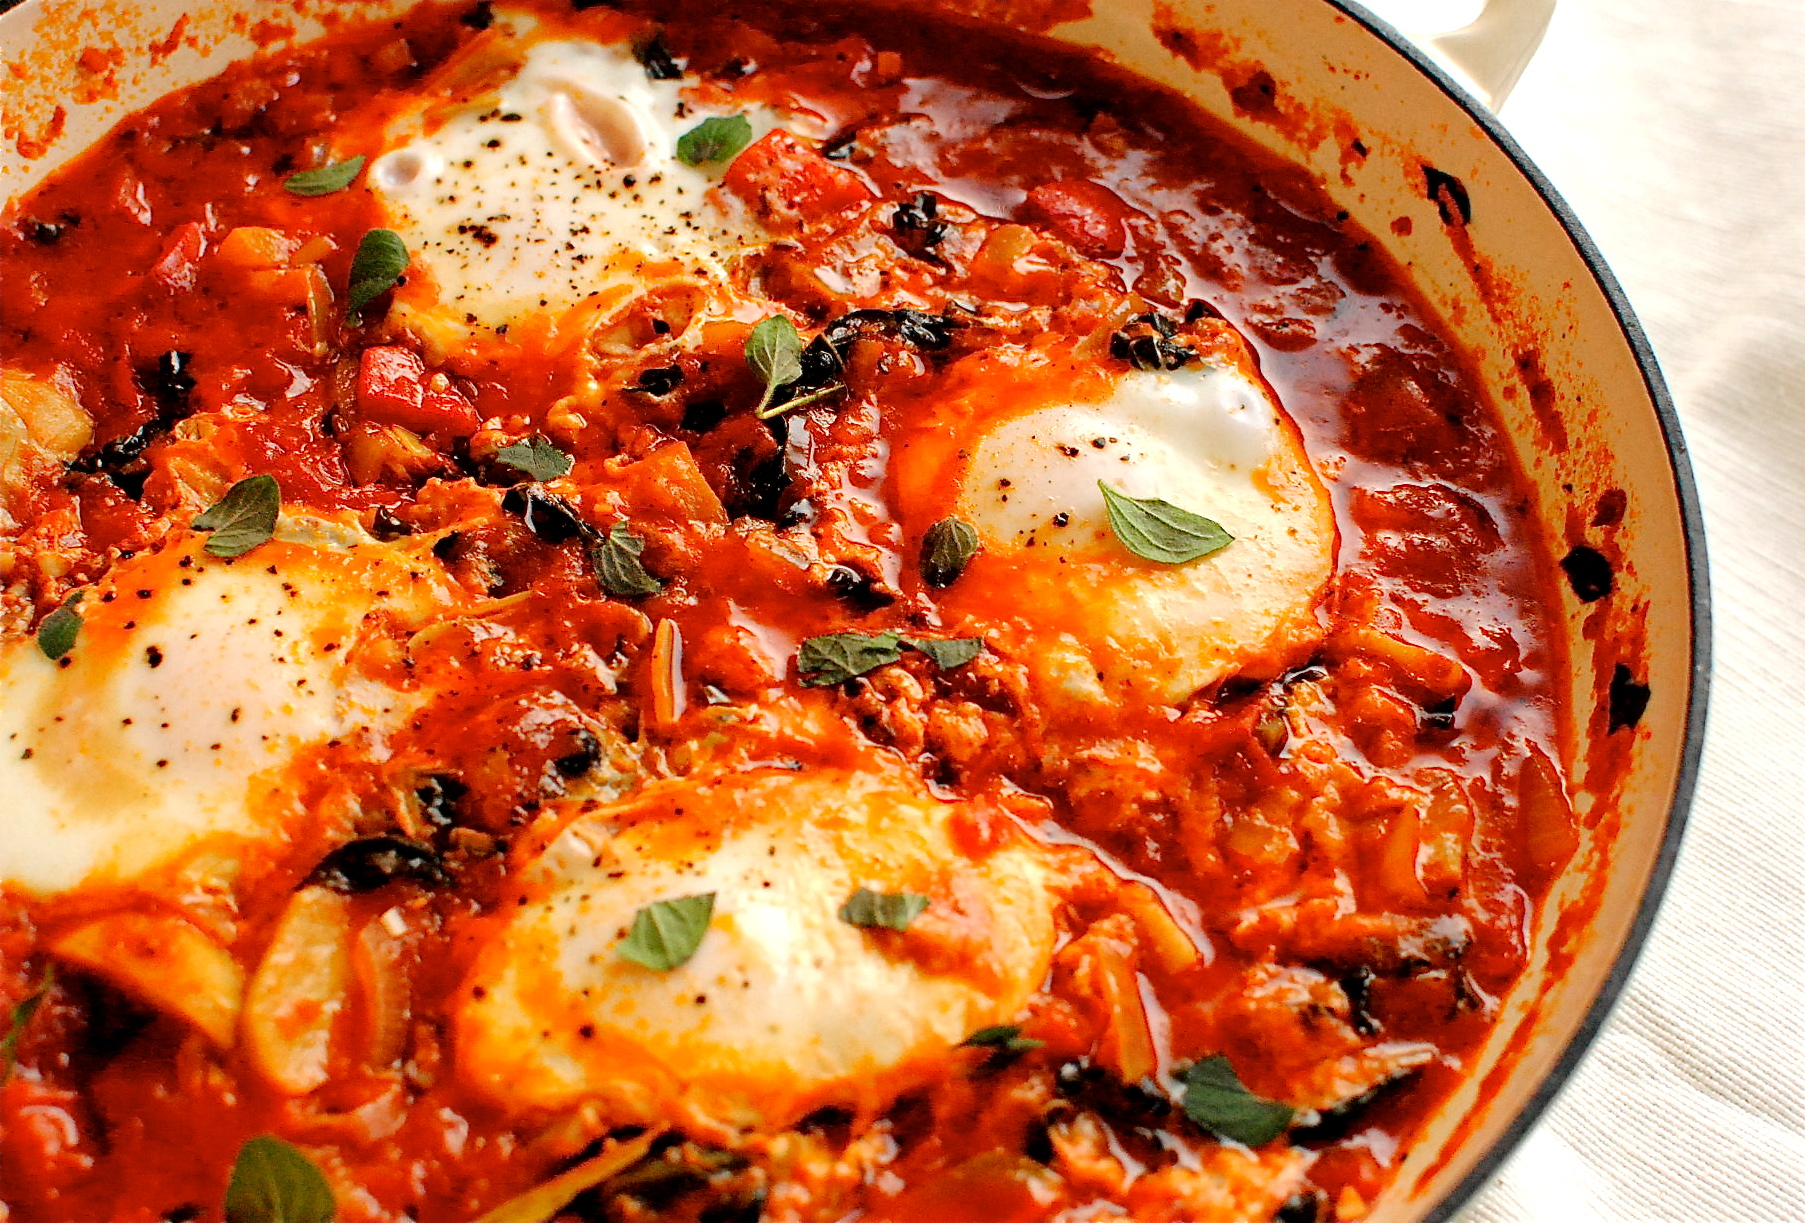 African Cuisine Recipes Easy Shakshuka Spiced North African Tomato And Eggs